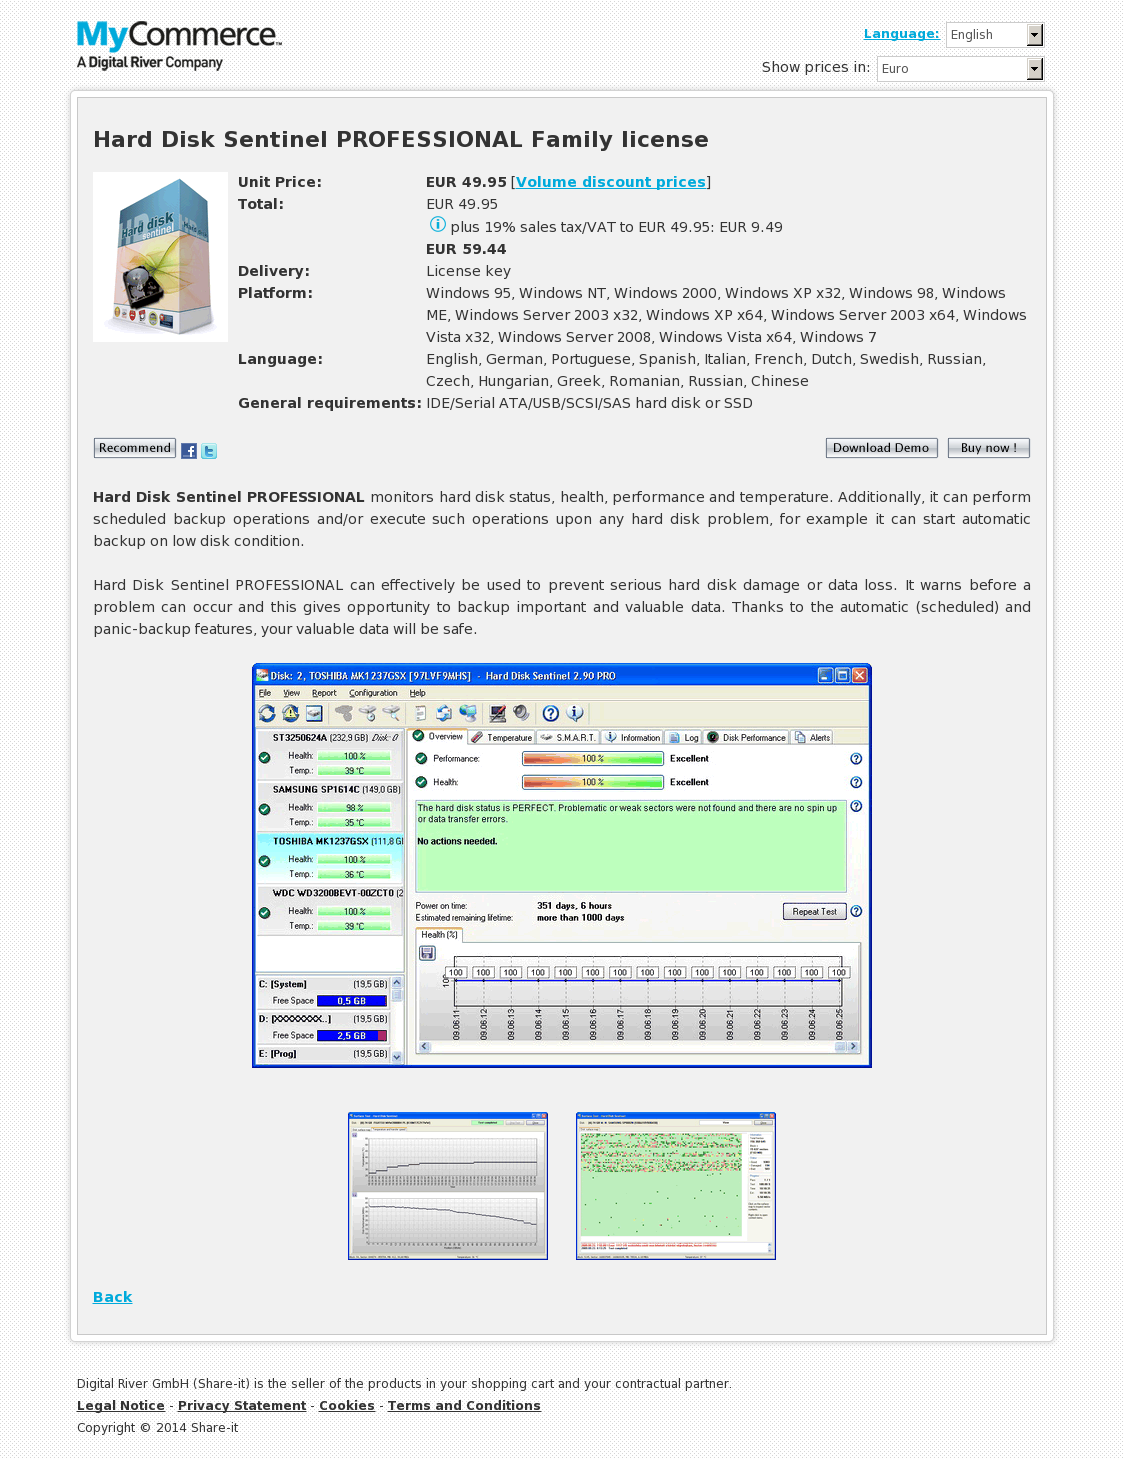 Hard Disk Sentinel PROFESSIONAL Family License